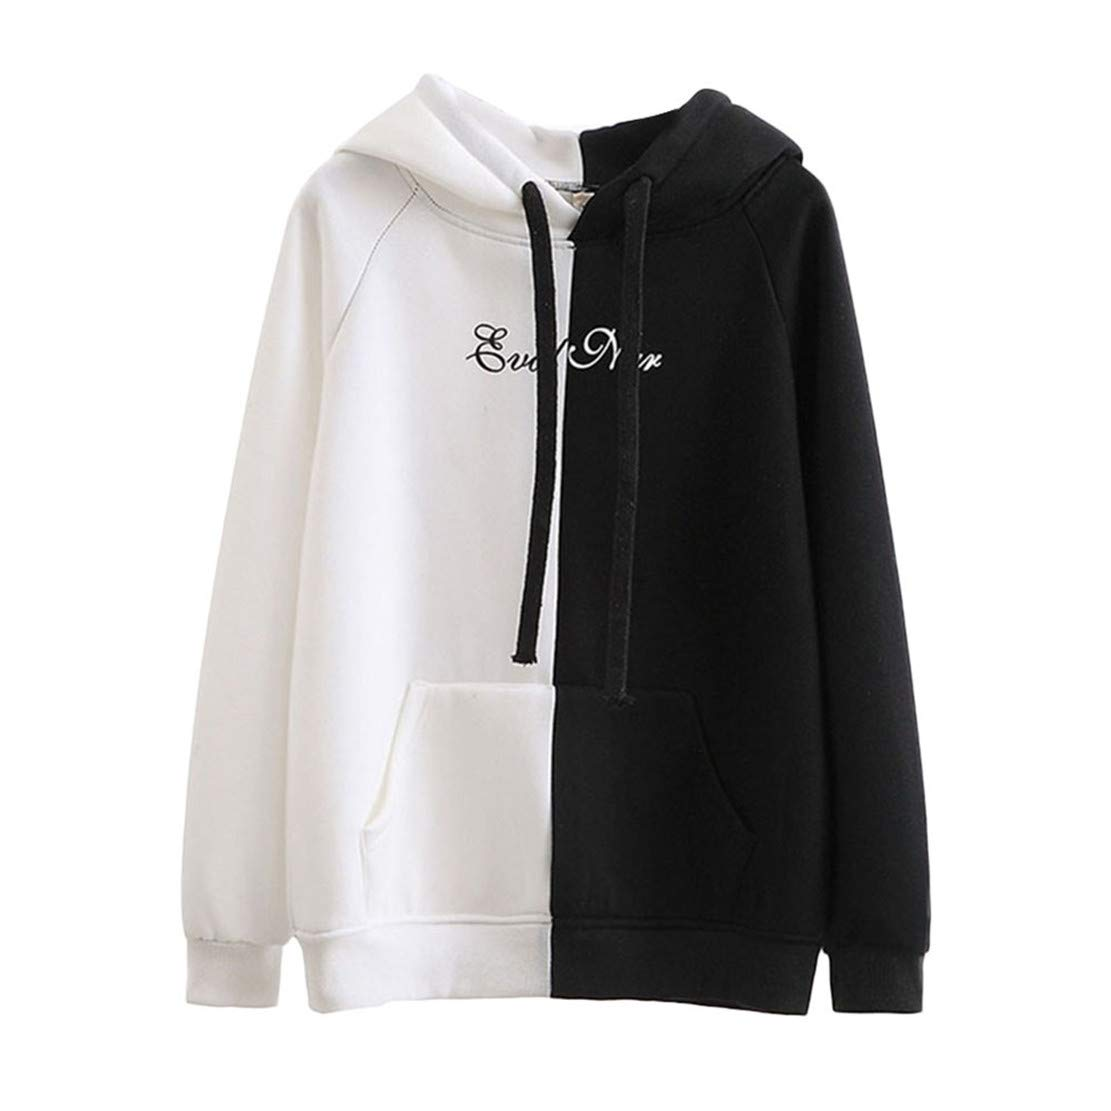 Mikey Store Women Autumn Long Sleeve Hooded Fashion Sweatshirt Letter Print